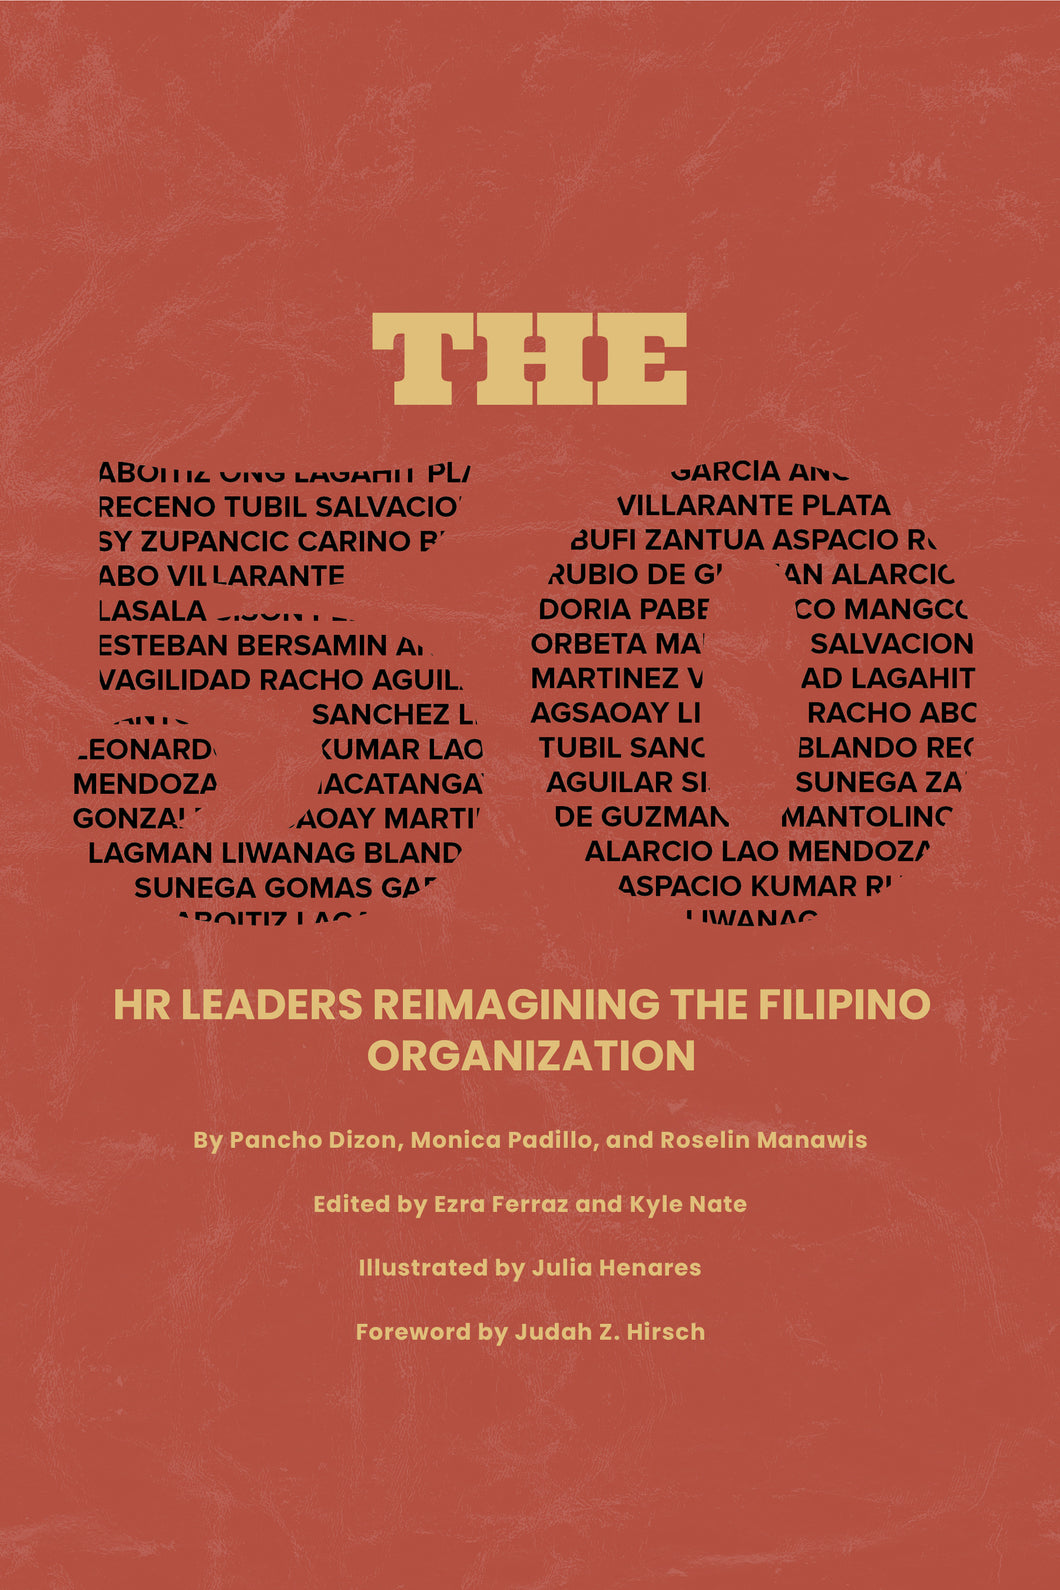 The 50: HR Leaders Reimagining the Filipino Organization